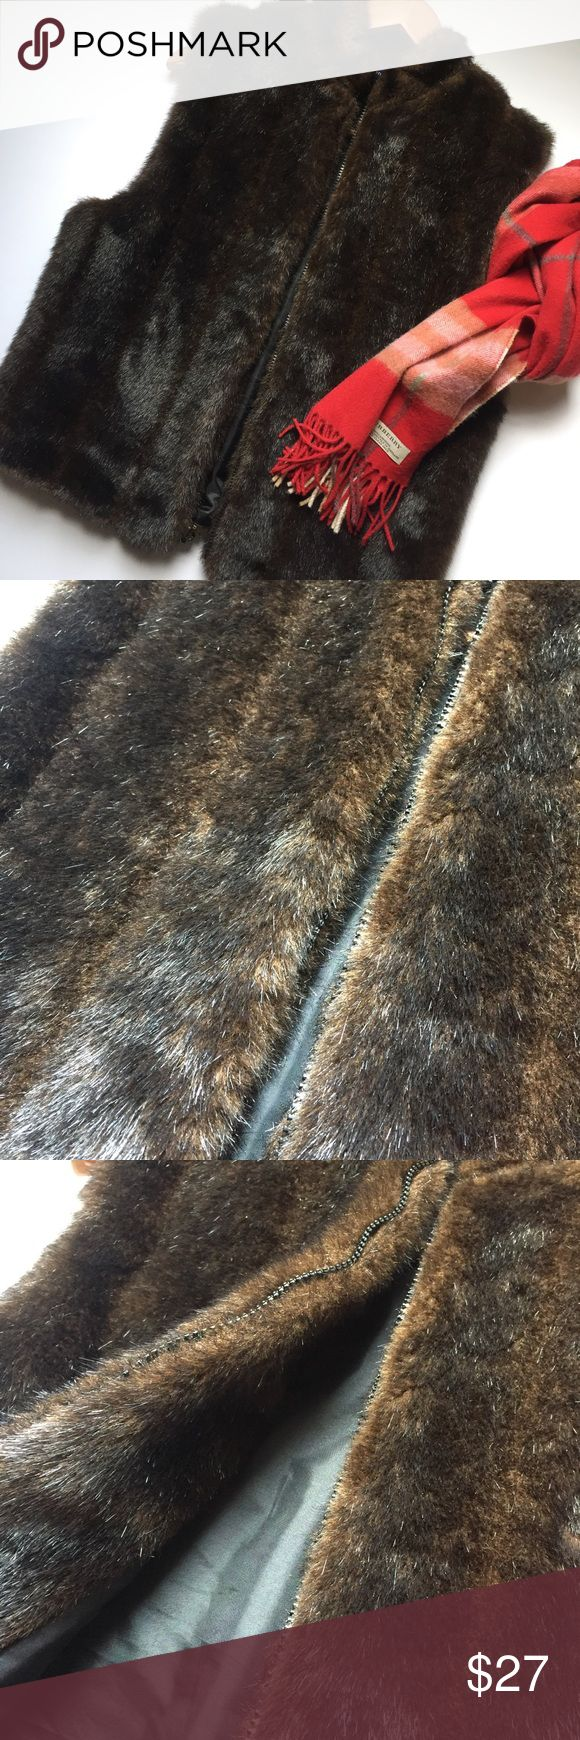 Outstanding Faux Mink Vest Purchased from Dillard's. Worn once! Absolutely flawless. Front zipper and fully lined. Beautiful high quality piece at a low price. Preston & York Jackets & Coats Vests